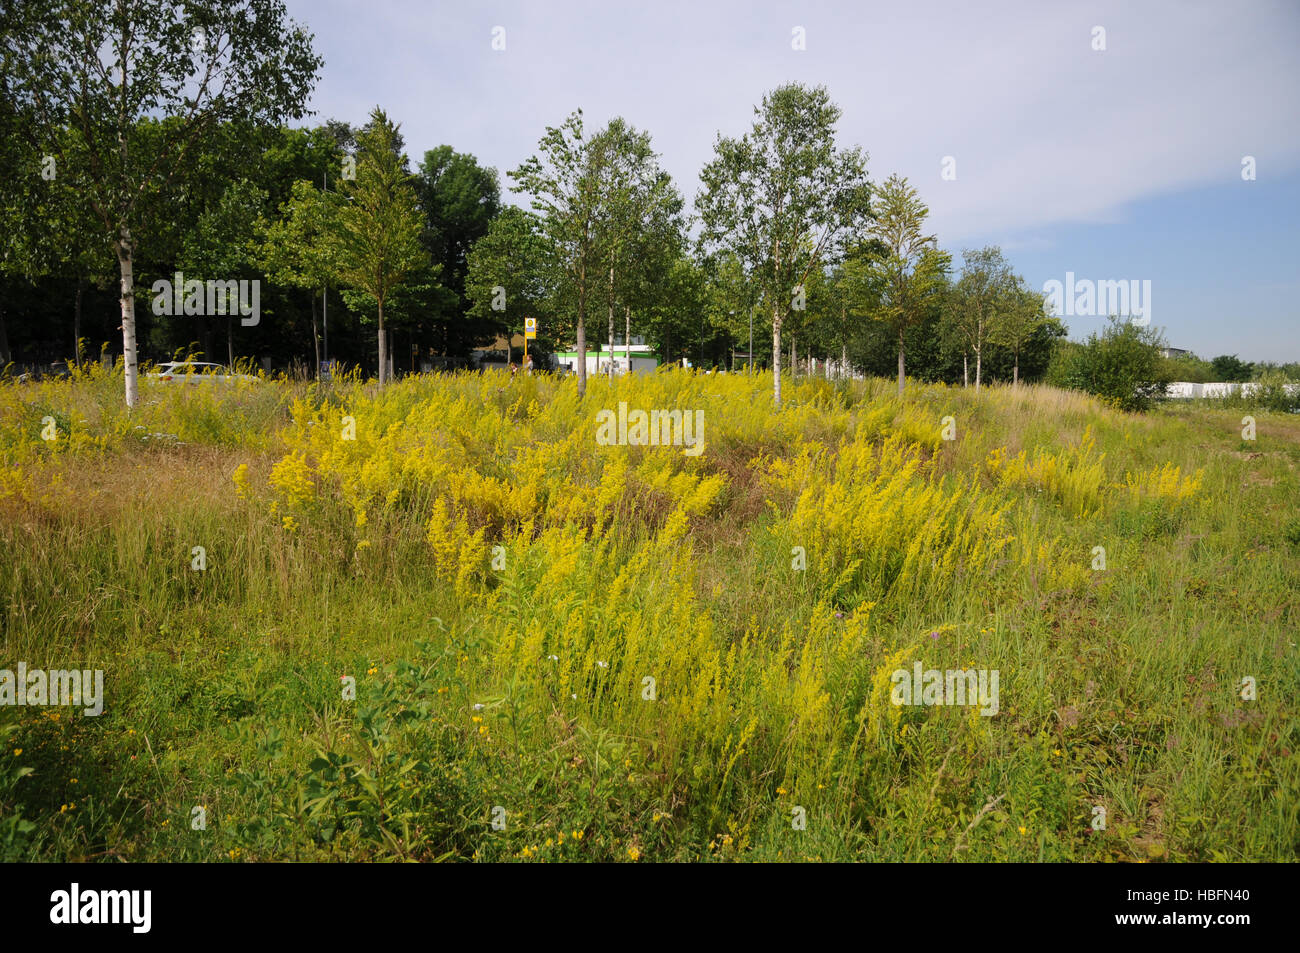 Meadow, urban green, wasteland - Stock Image